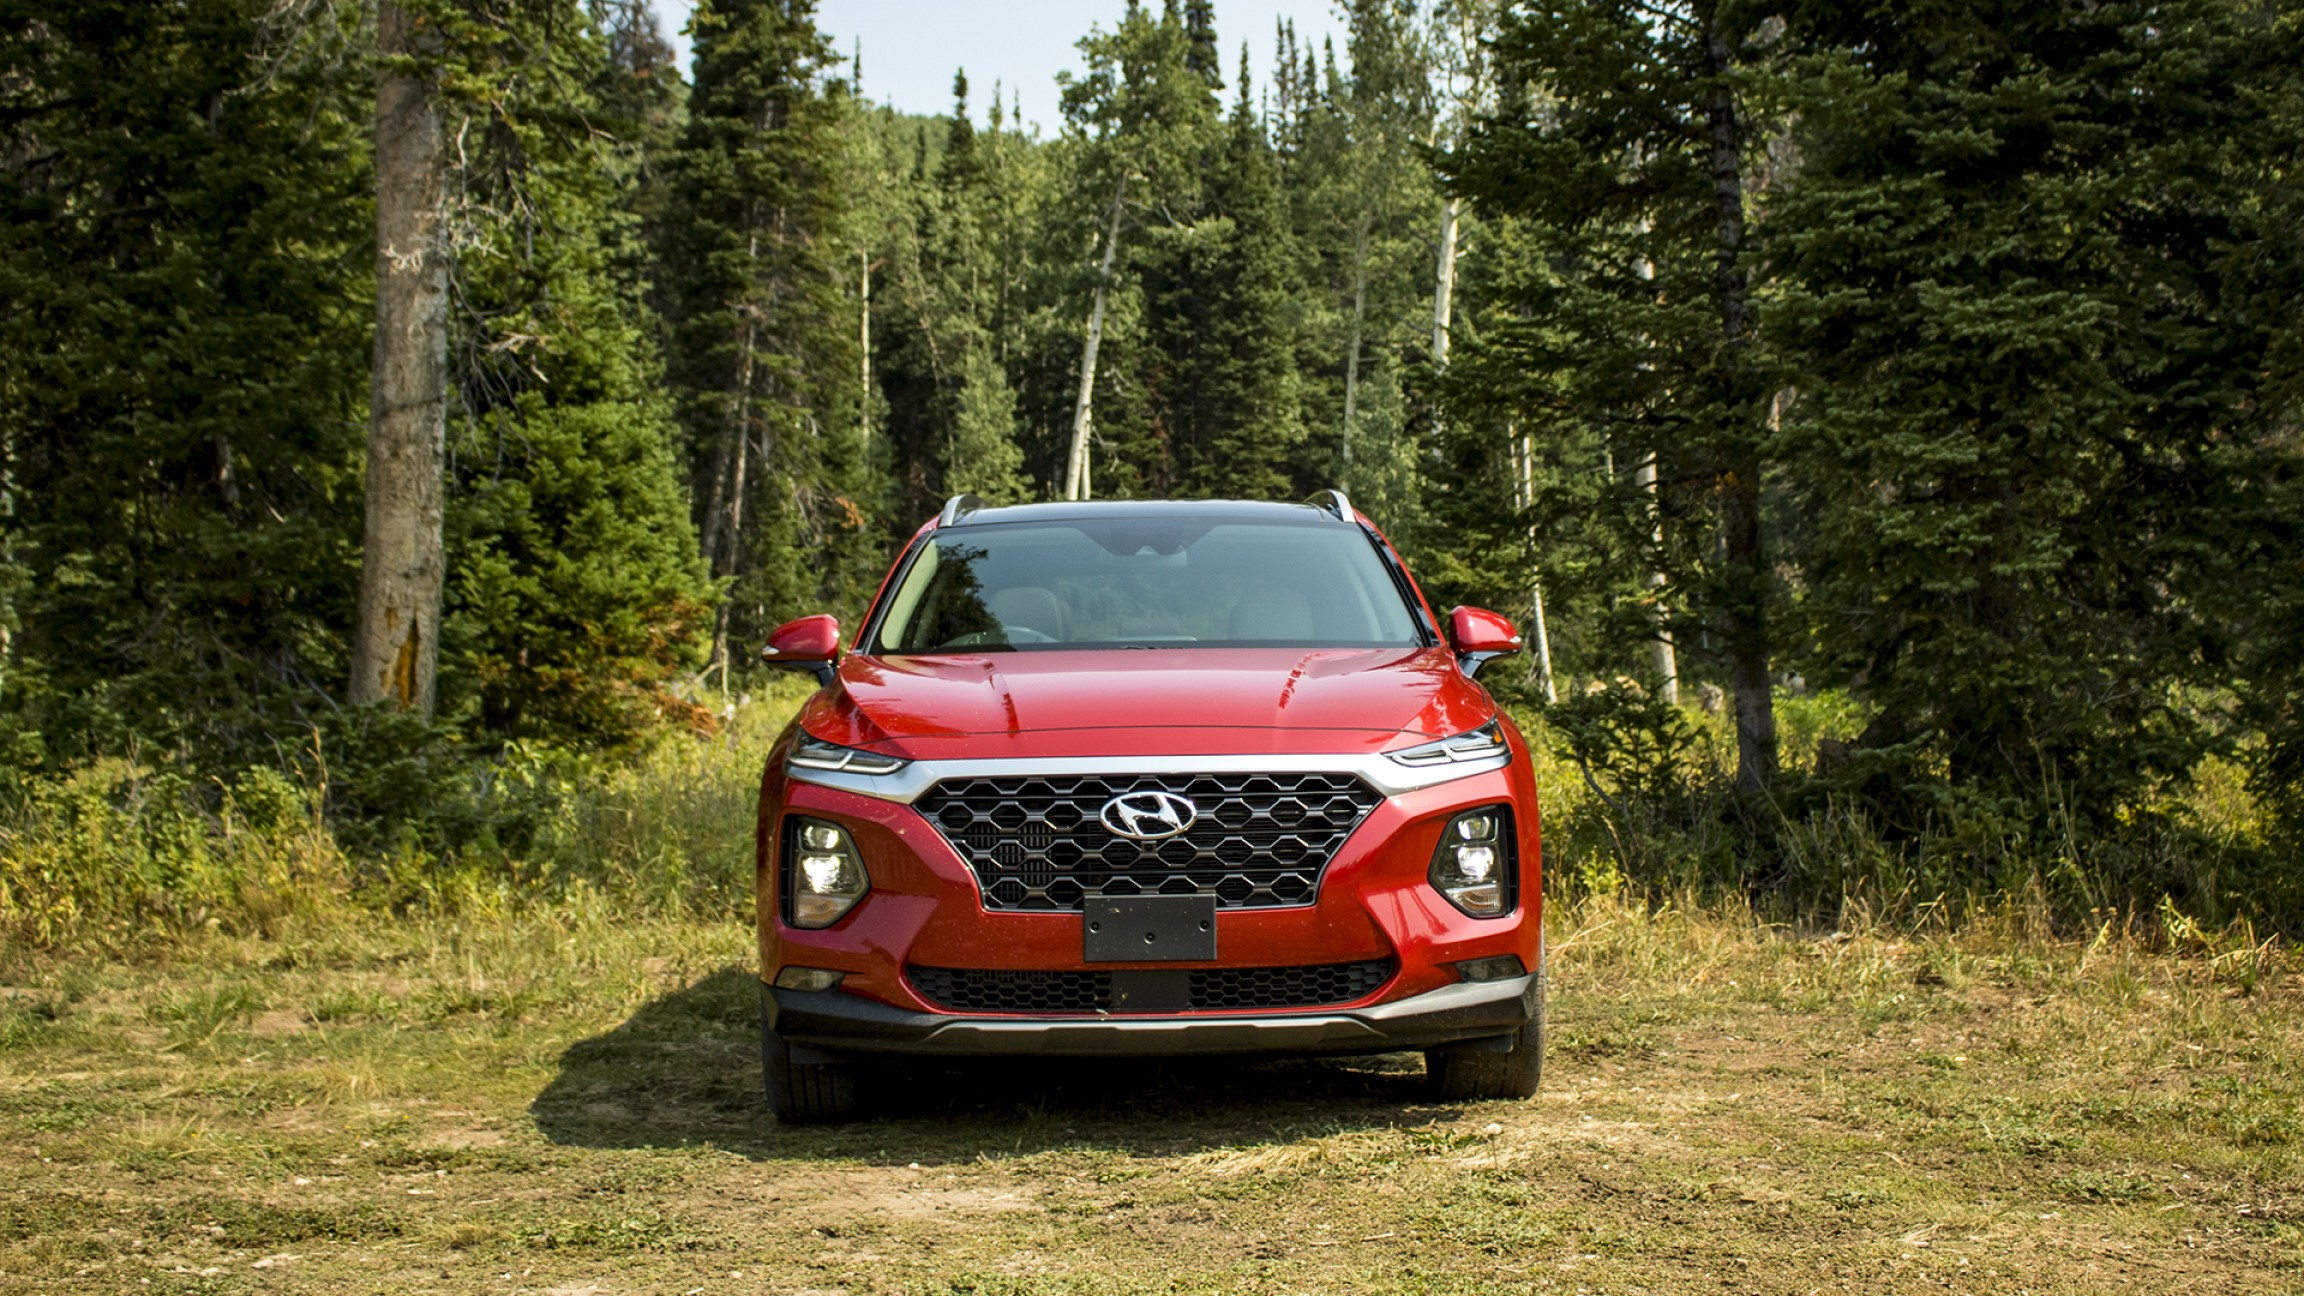 SUV Car Elevation Vector: Hyundai Santa Fe First Drive Review How Times Have Changed For Hyundais Midsize Suv